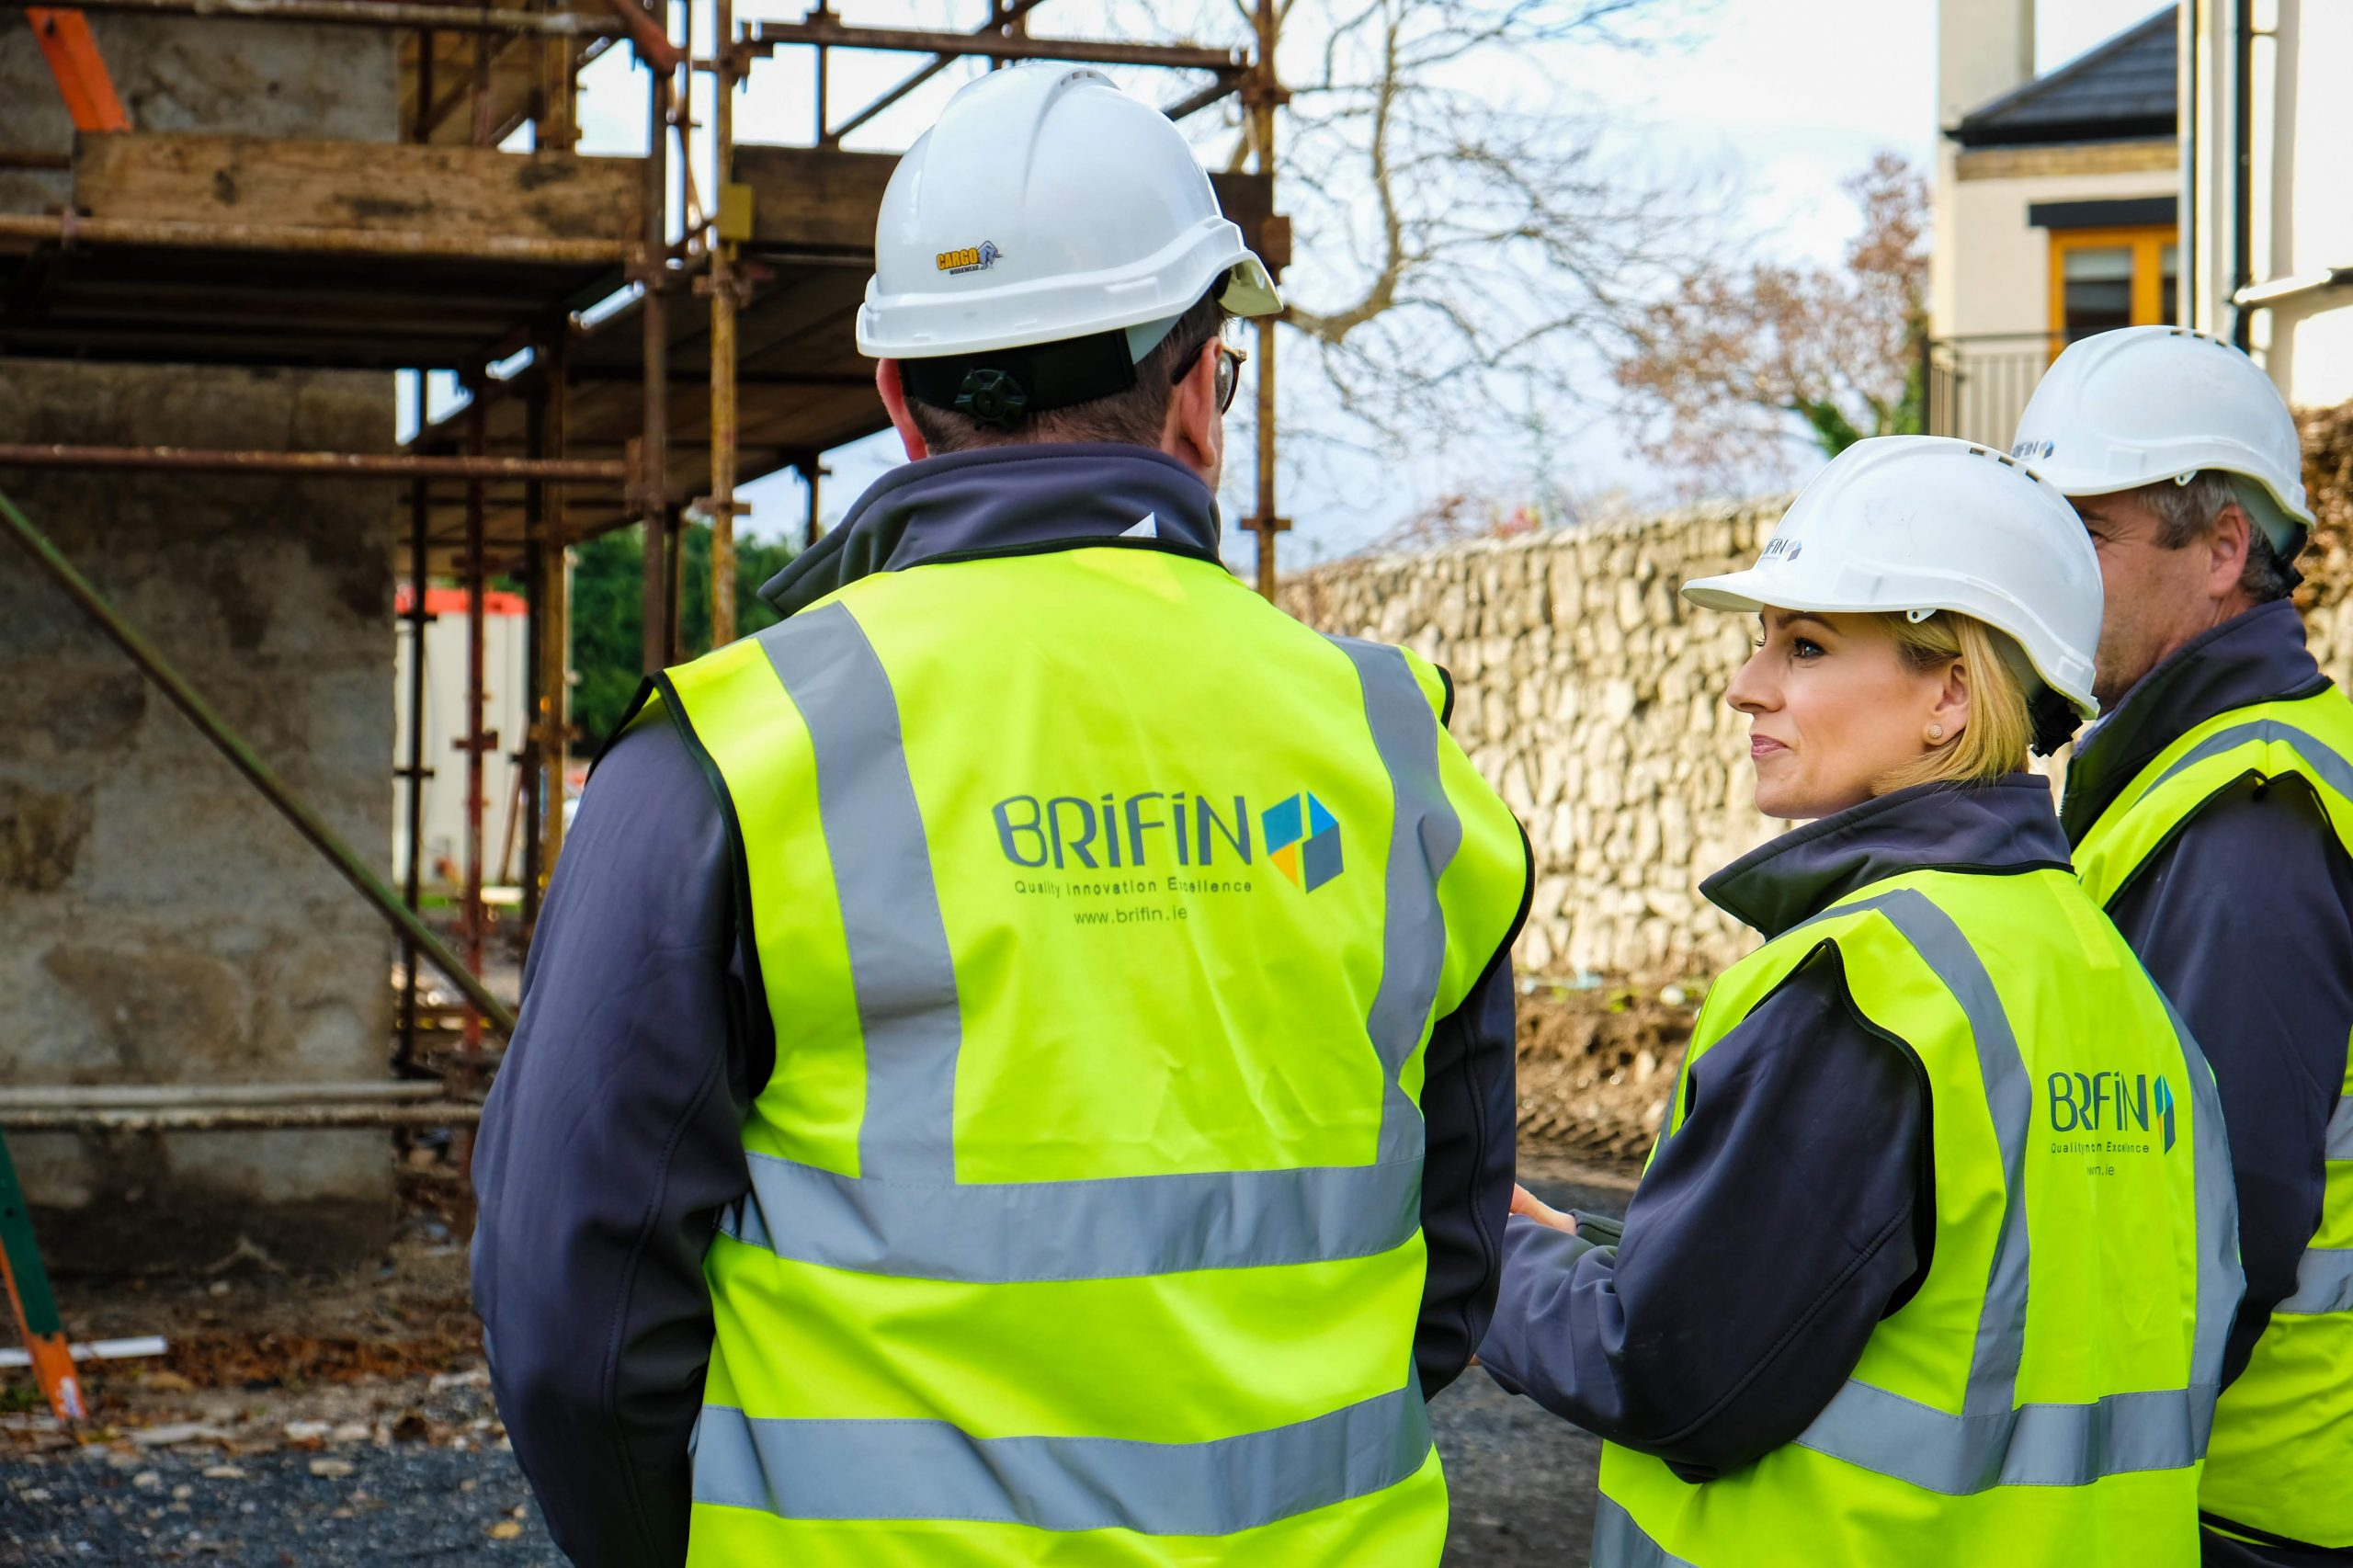 building-site-commerical-photography-fiona-madden